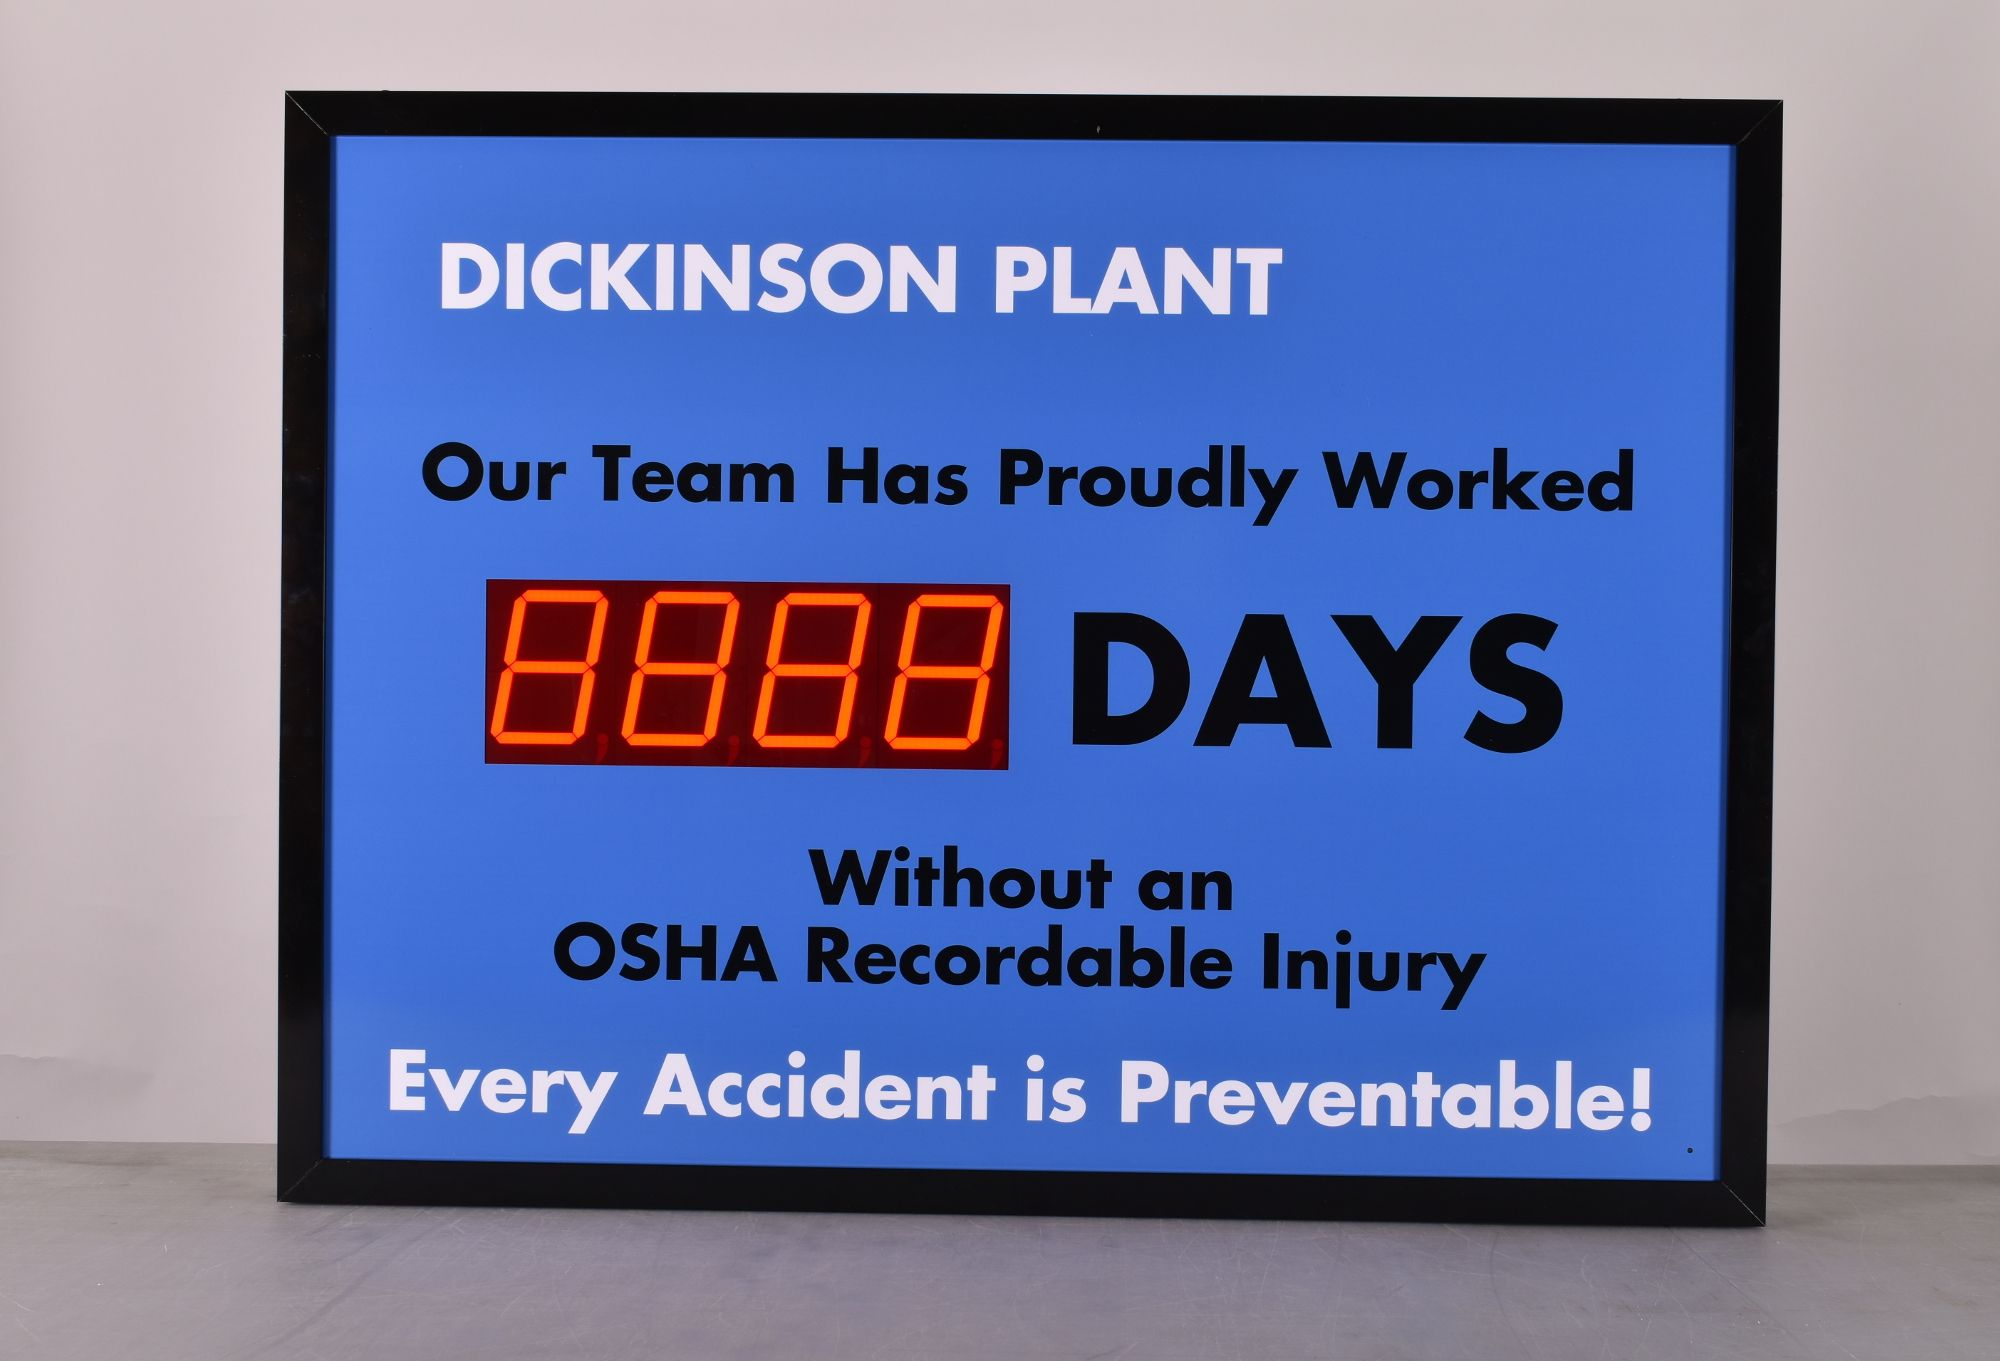 Number Days Since Last Accident Sign with Large Display